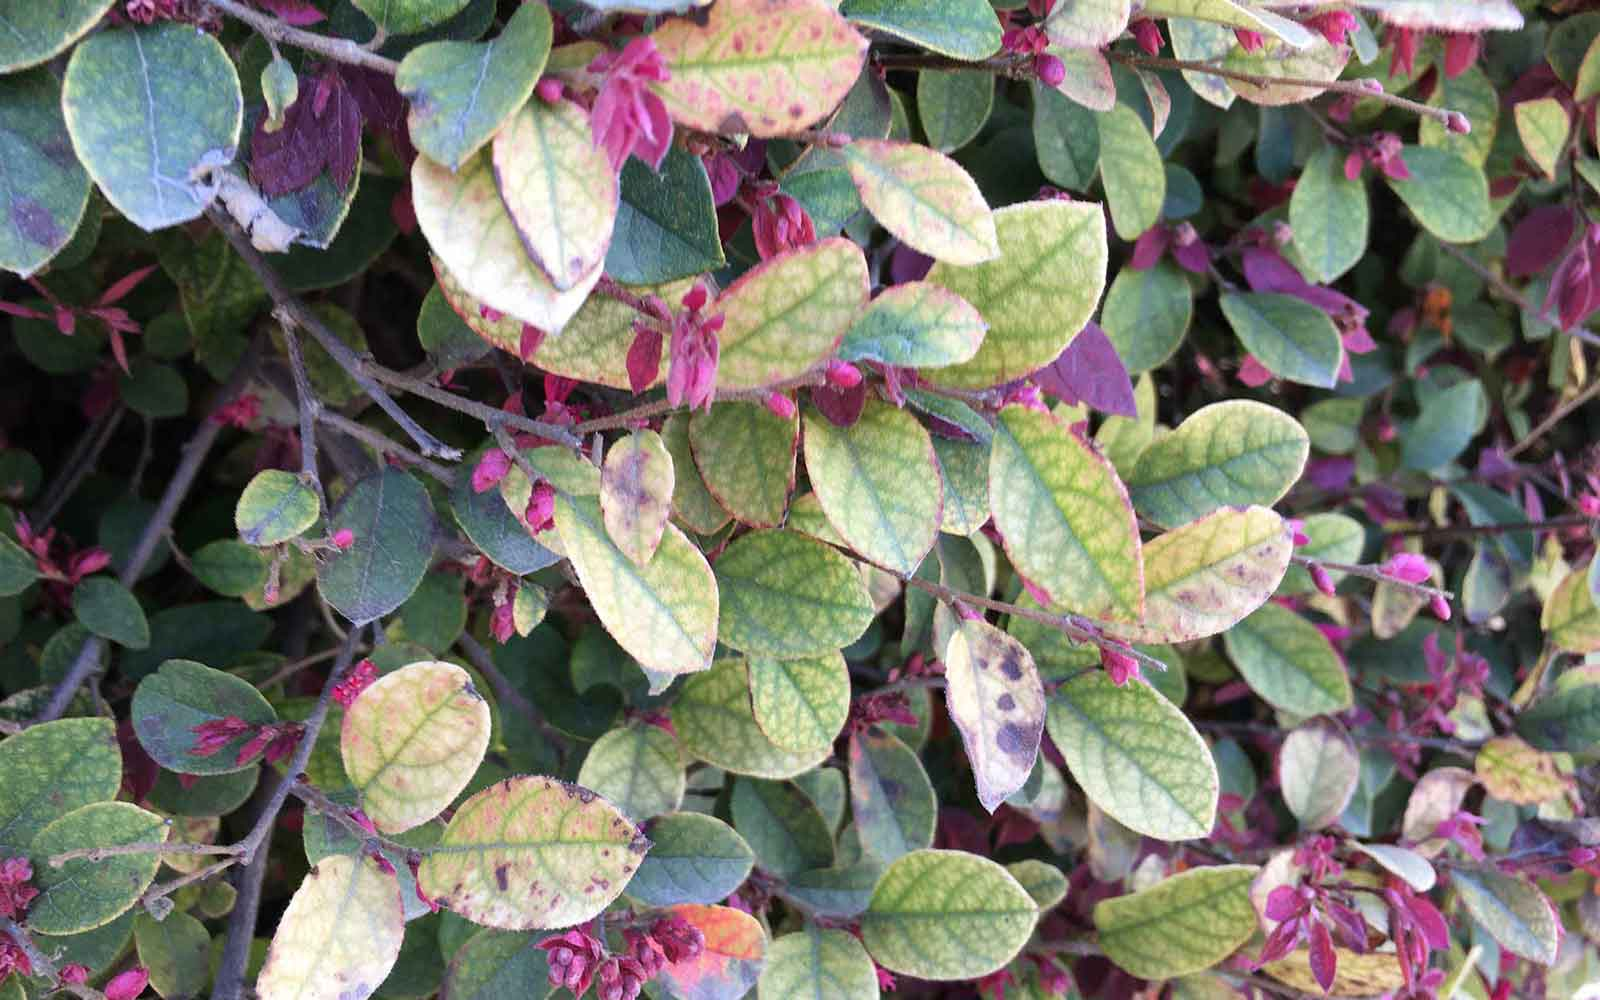 Loropetalum leaves can often be susceptible to patches of the leaves turning brown or yellow as the plant ages.